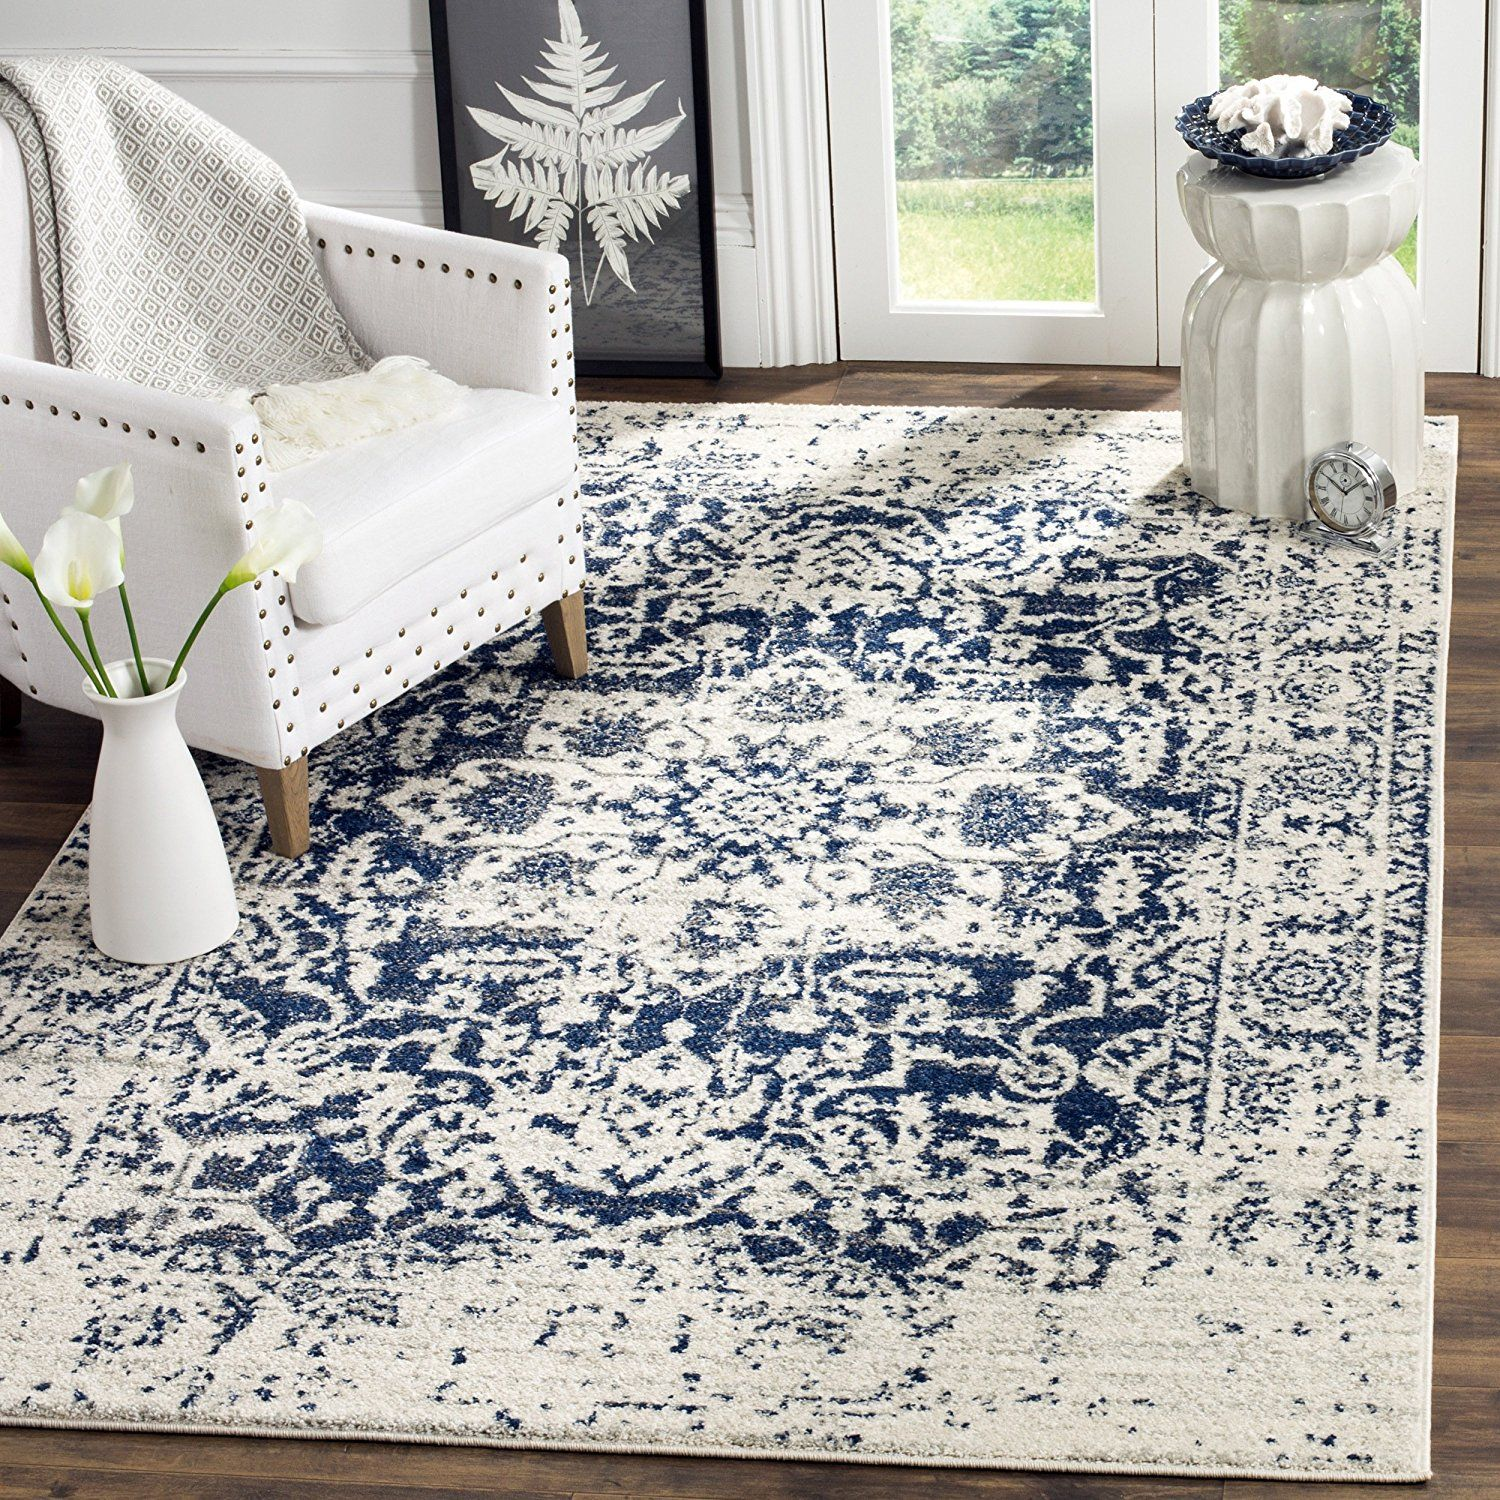 Amazon Com Safavieh Madison Collection Mad603d Cream And Navy Area Rug 9 X 12 Kitchen Dining Interer Interery Spalni Dom